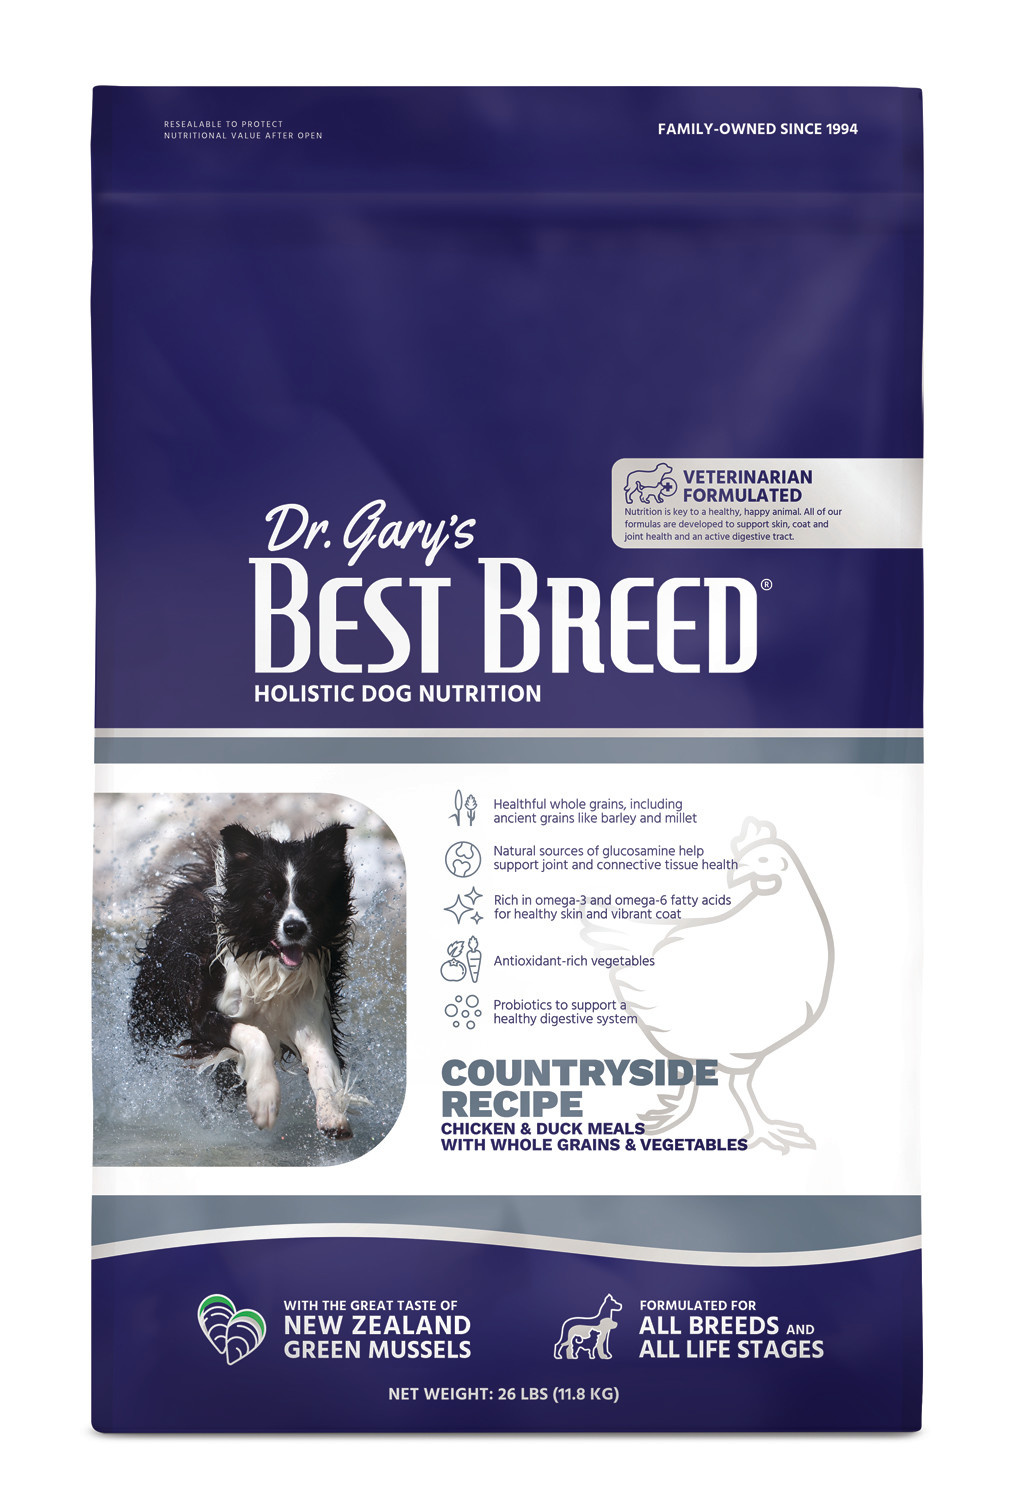 Dr. Gary's Best Breed Dr. Gary's Best Breed  Countryside Recipe (Chicken with Vegetables and Herbs)-26 lbs